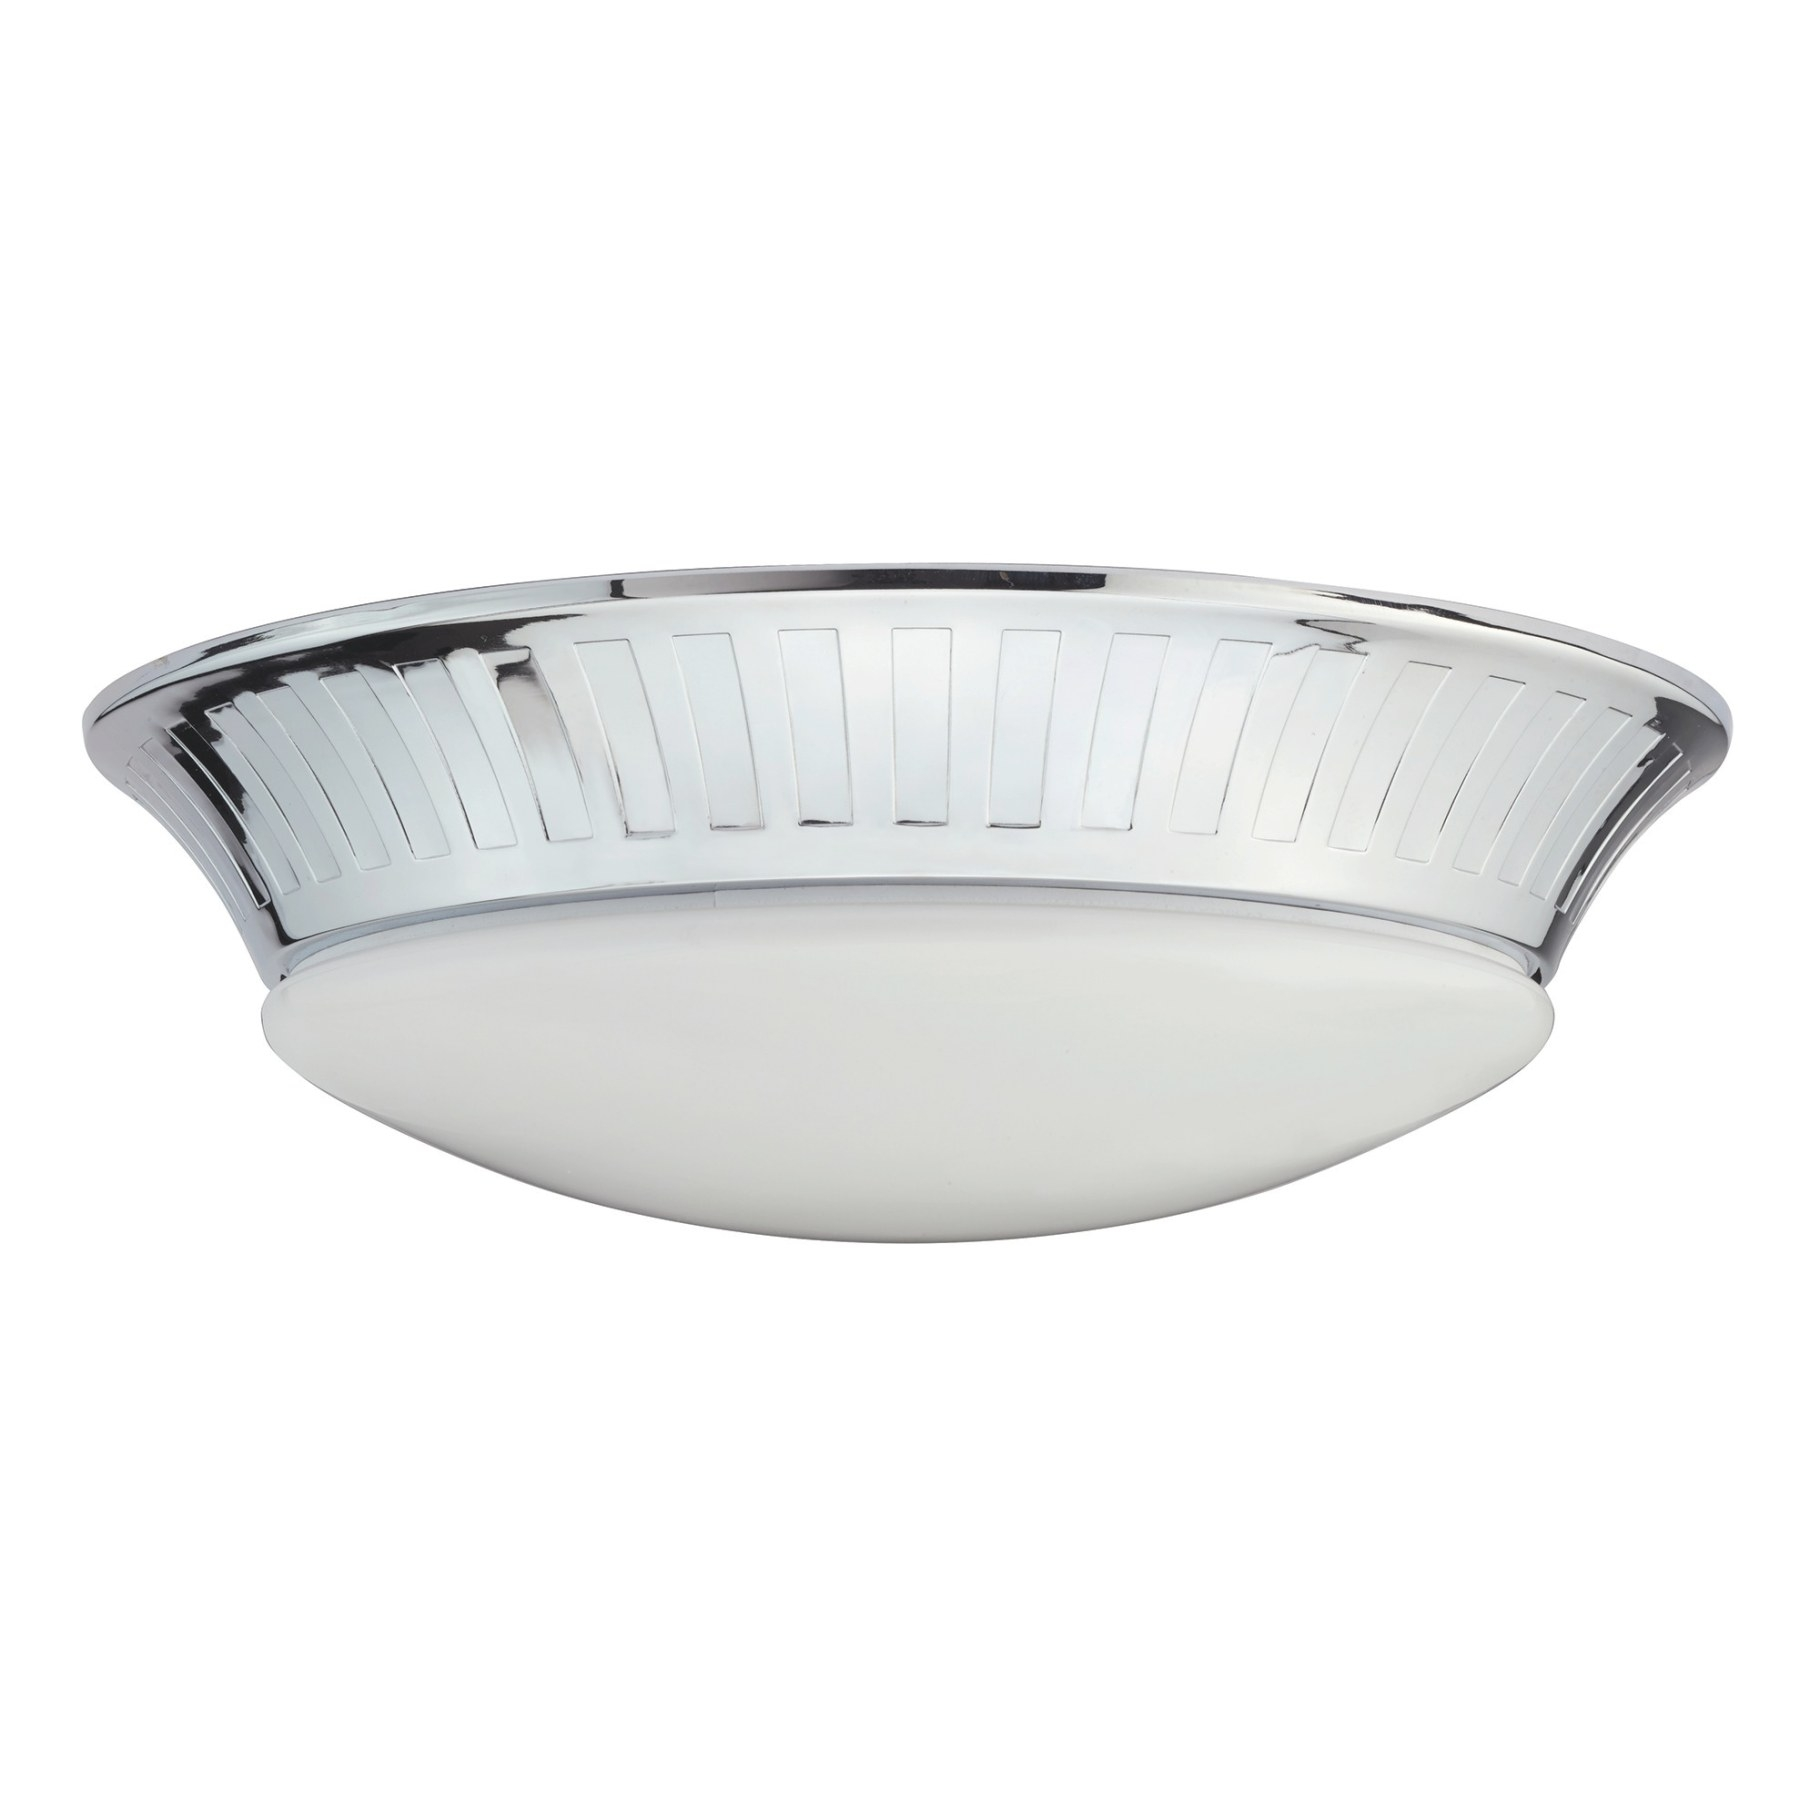 Whitby Bathroom Flush Mount Light Ceiling Fitting intended for Flush Mount Ceiling Lights